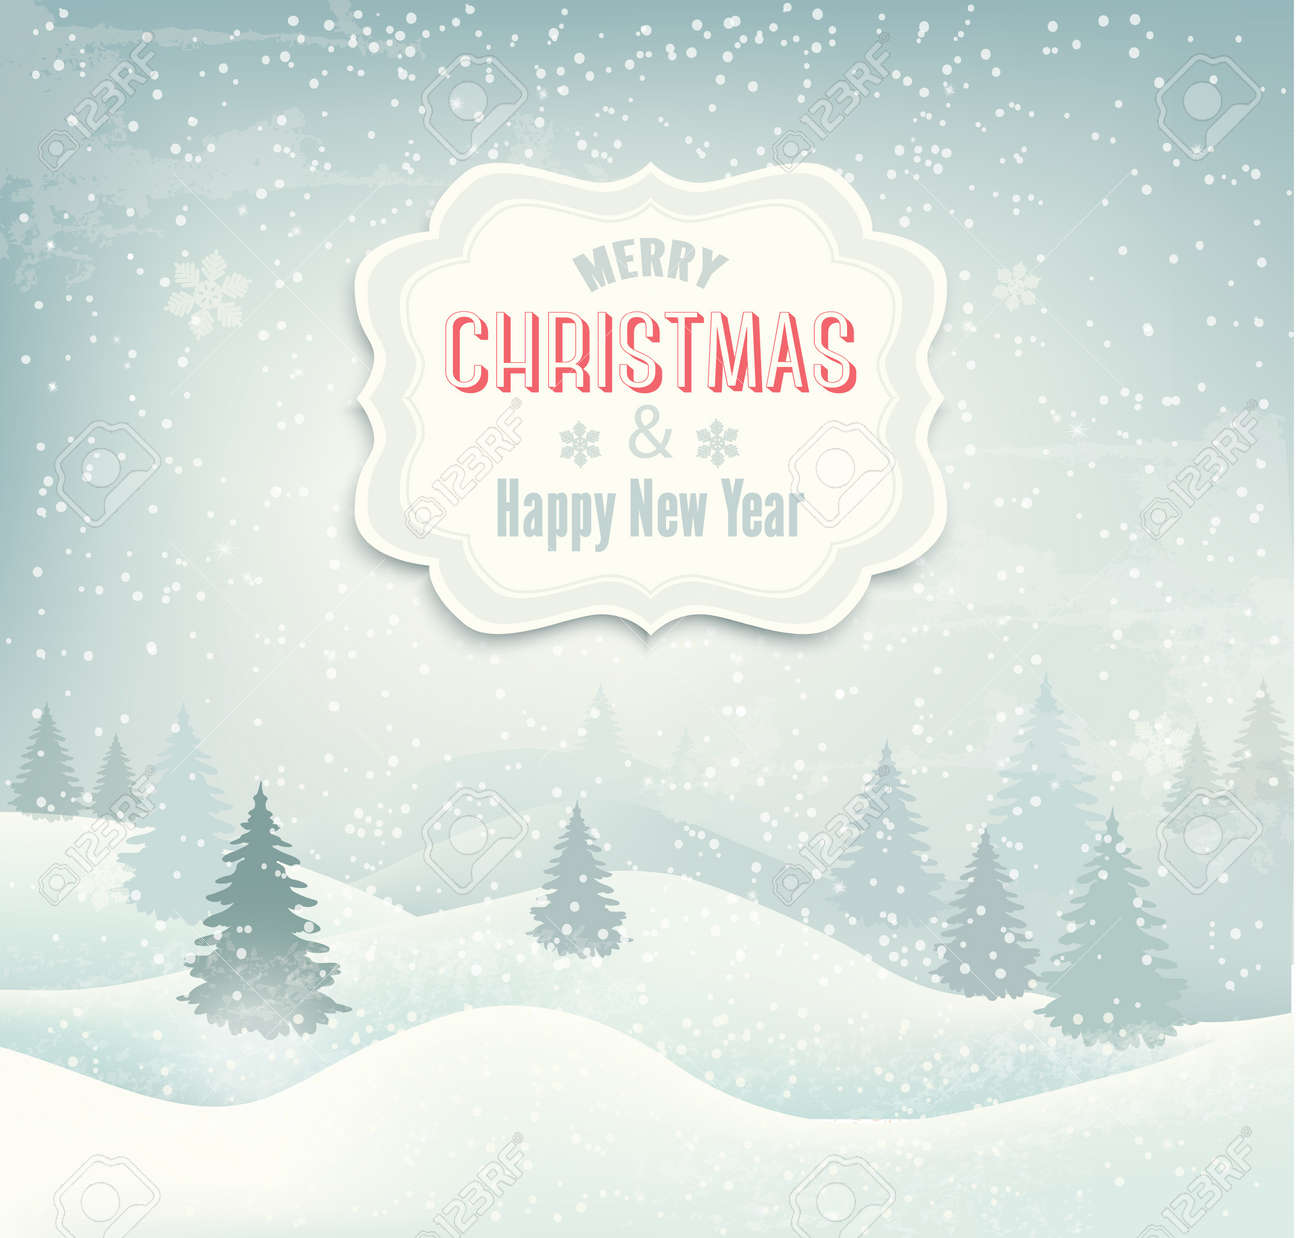 Retro holiday christmas background with winter landscape. Vector Stock Vector - 24061677